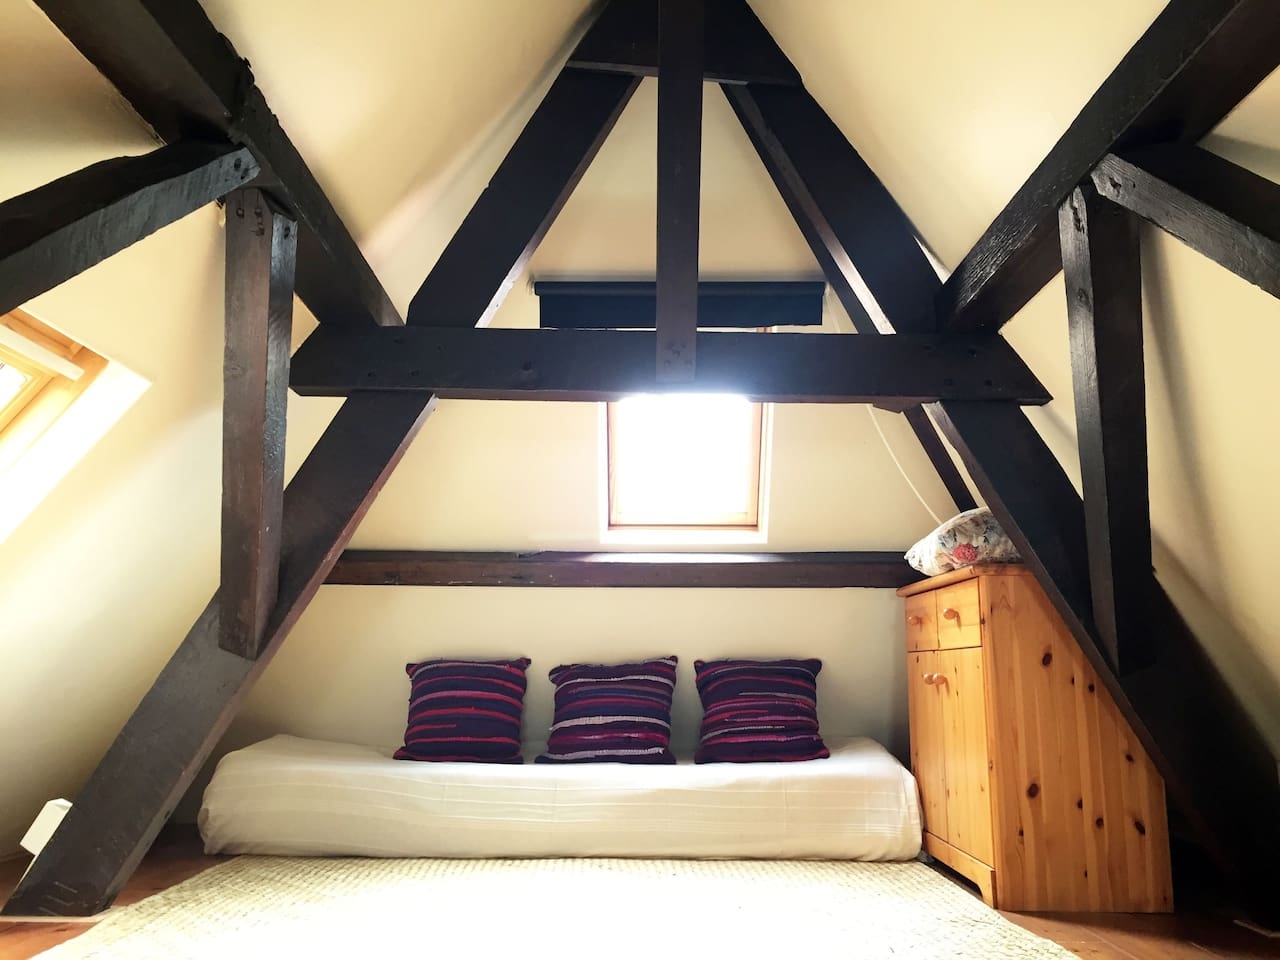 bright and inviting sitting space in the attic room